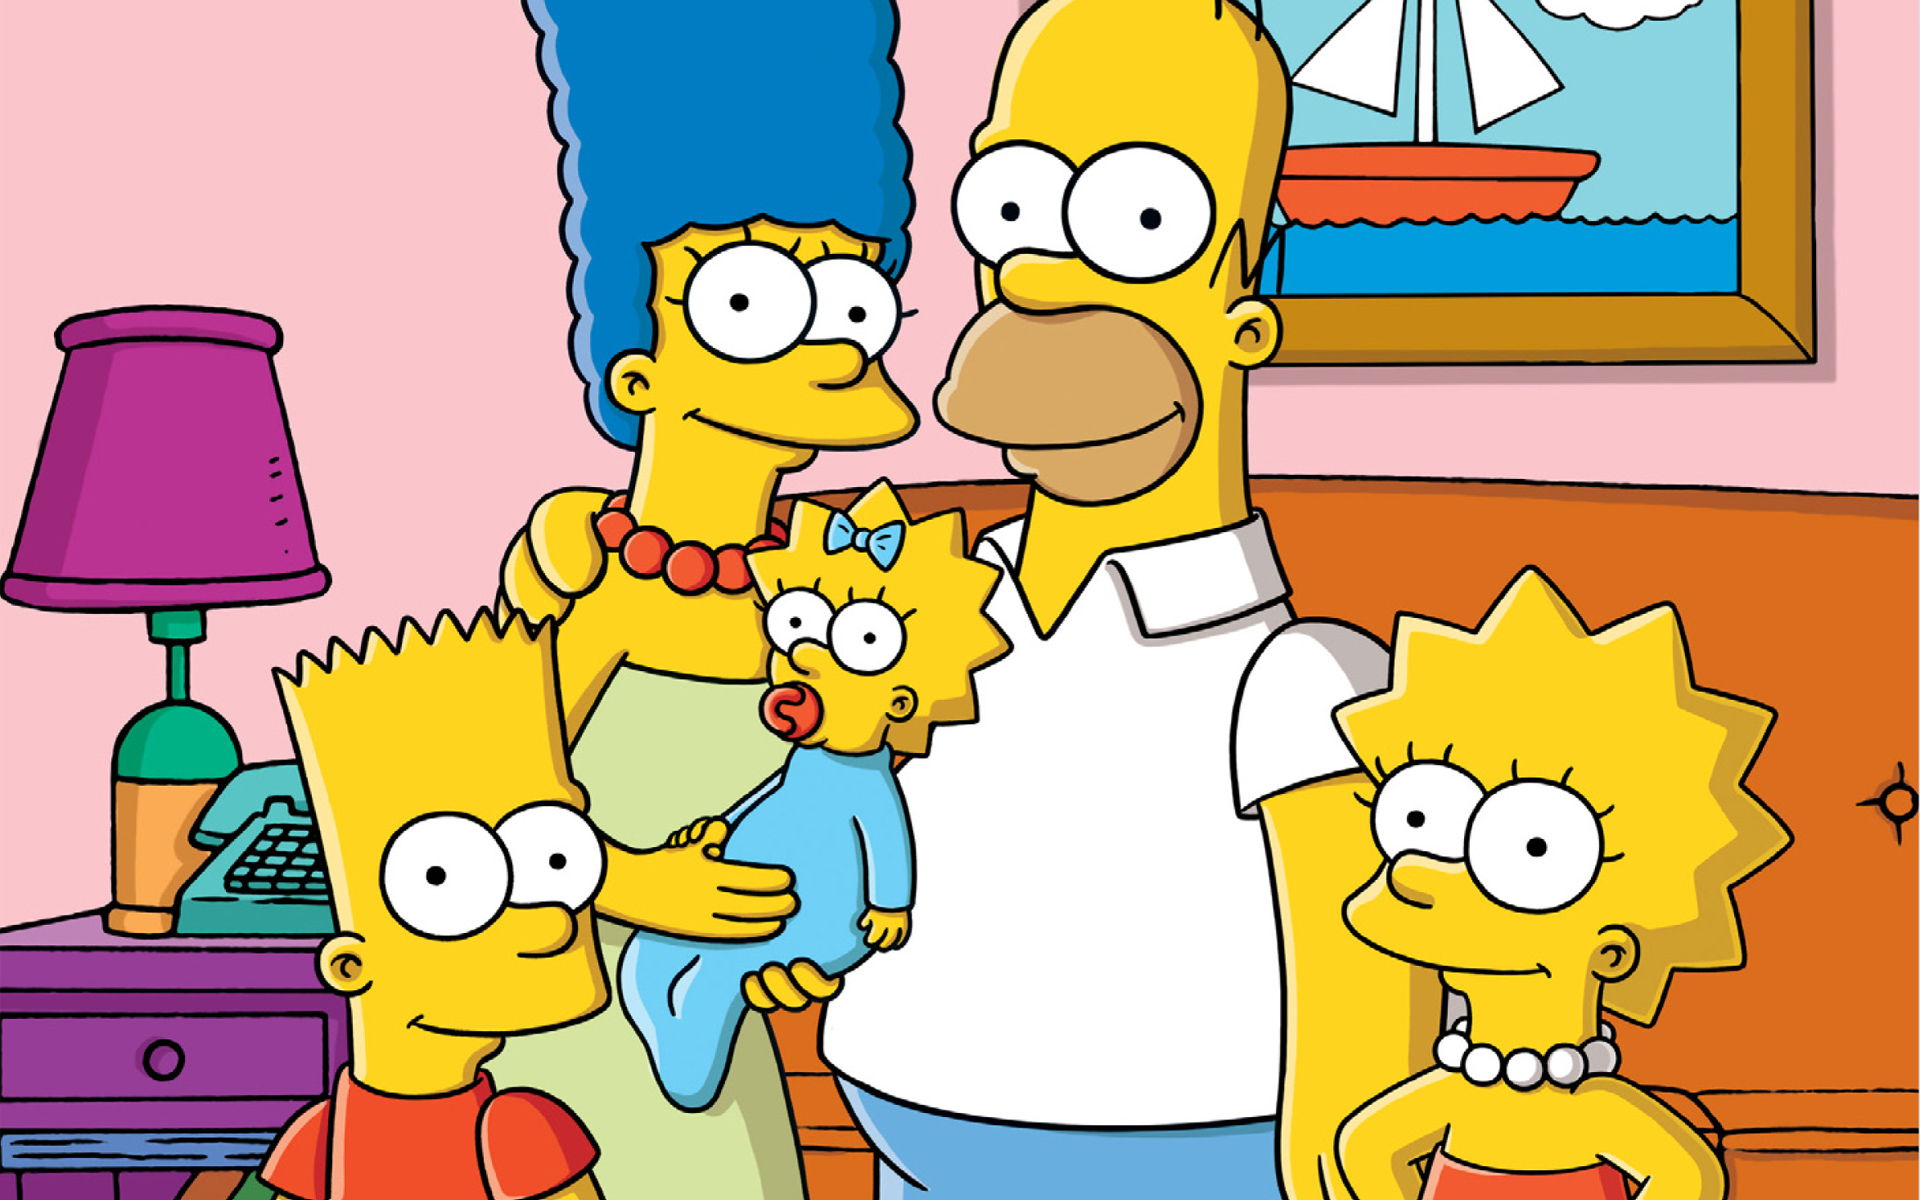 http://www.lardlad.com/assets/wallpaper/simpsons1920.jpg